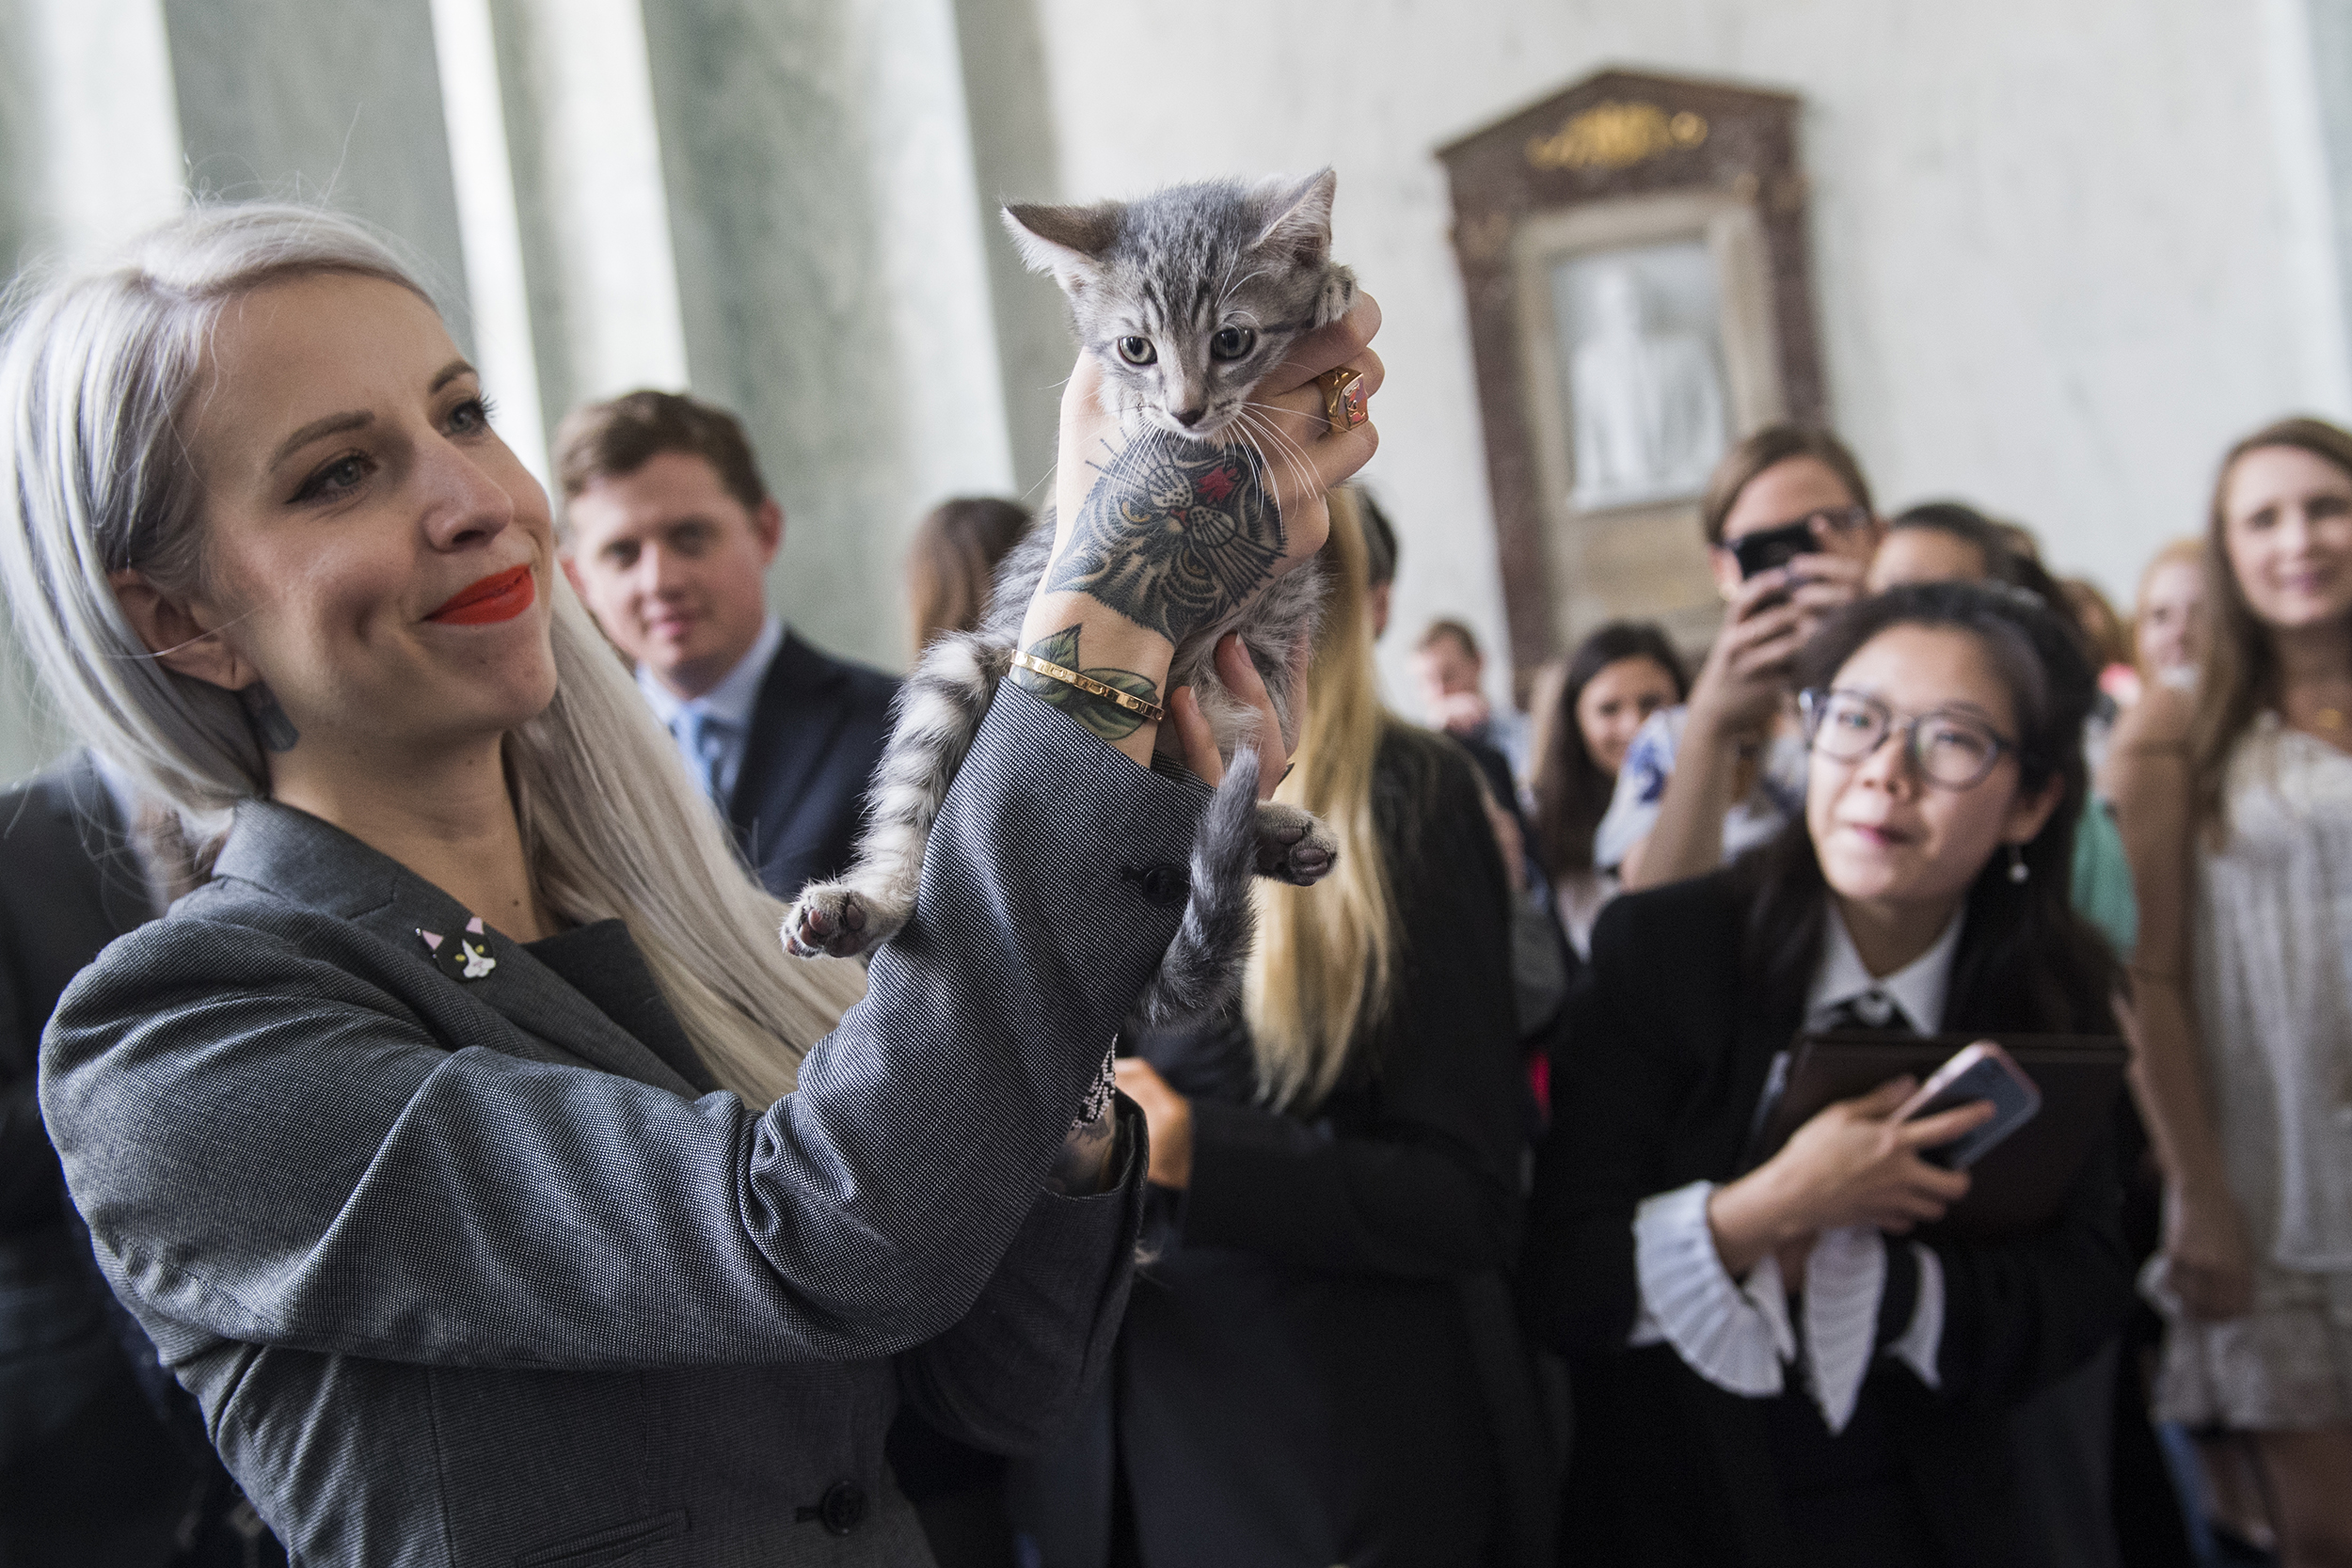 Cat cannibalism: Report discloses 'questionable' gov't animal